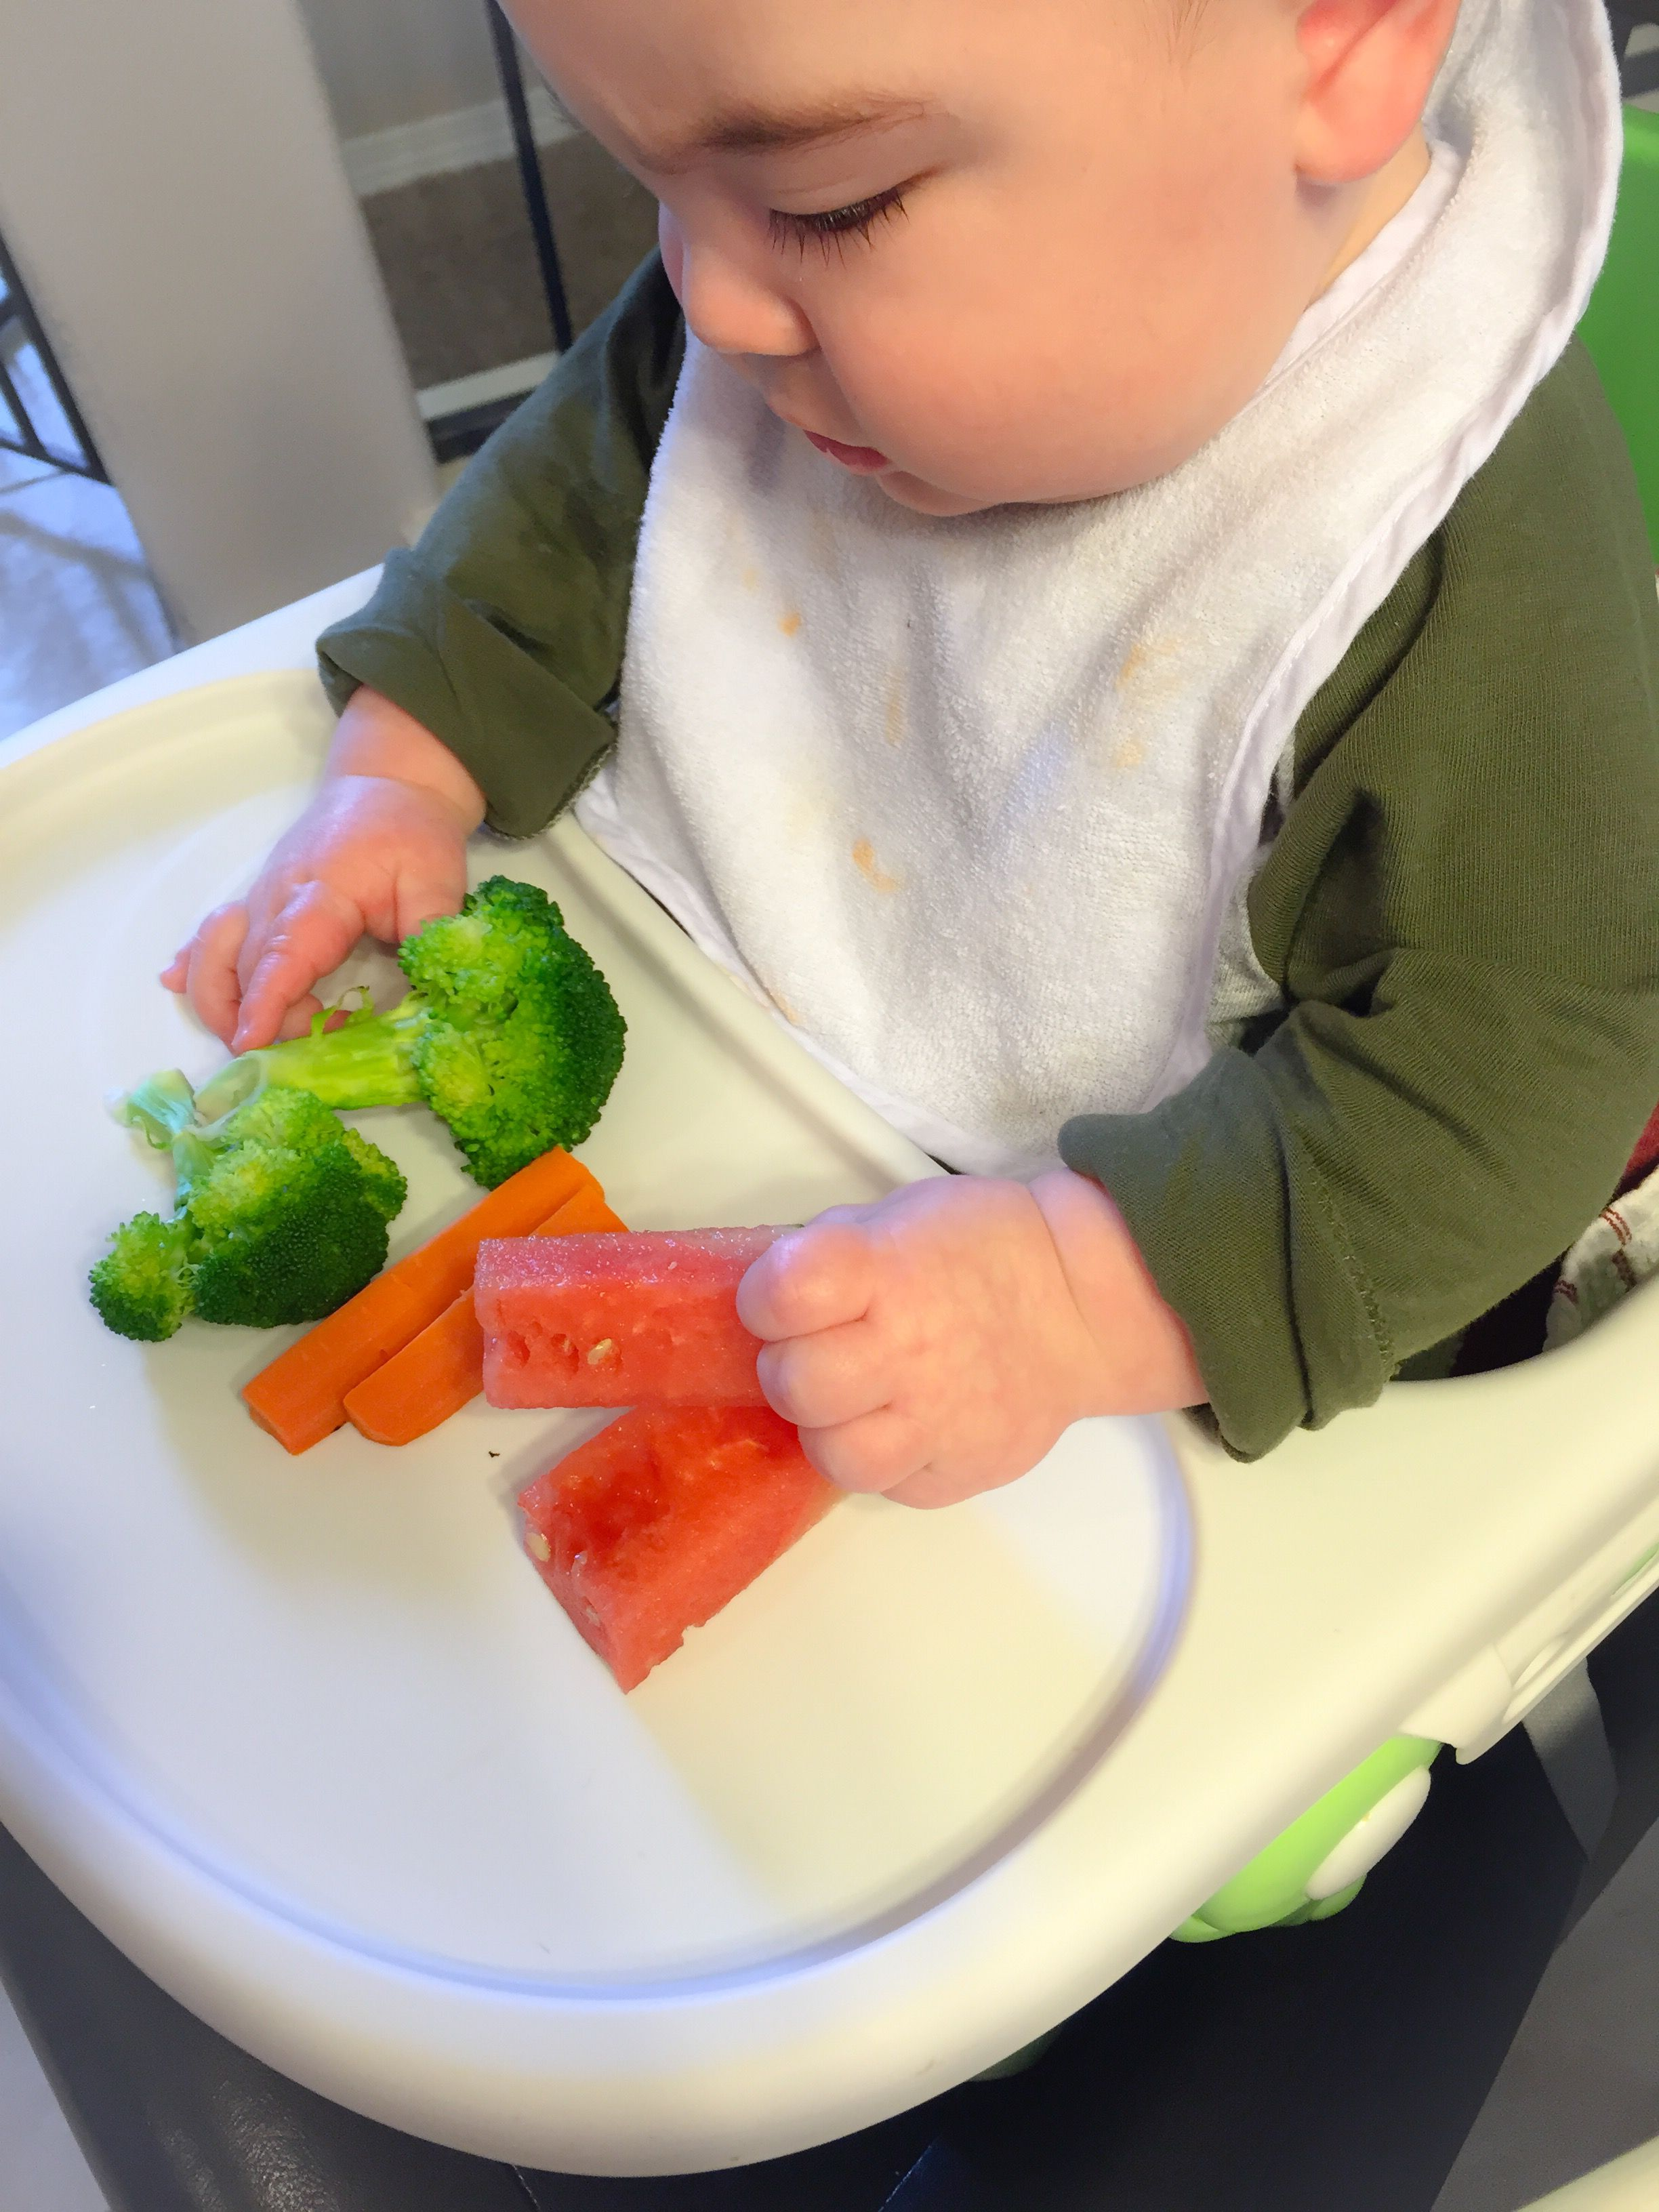 Baby Led Weaning Food Ideas For 6 Month Olds I Think